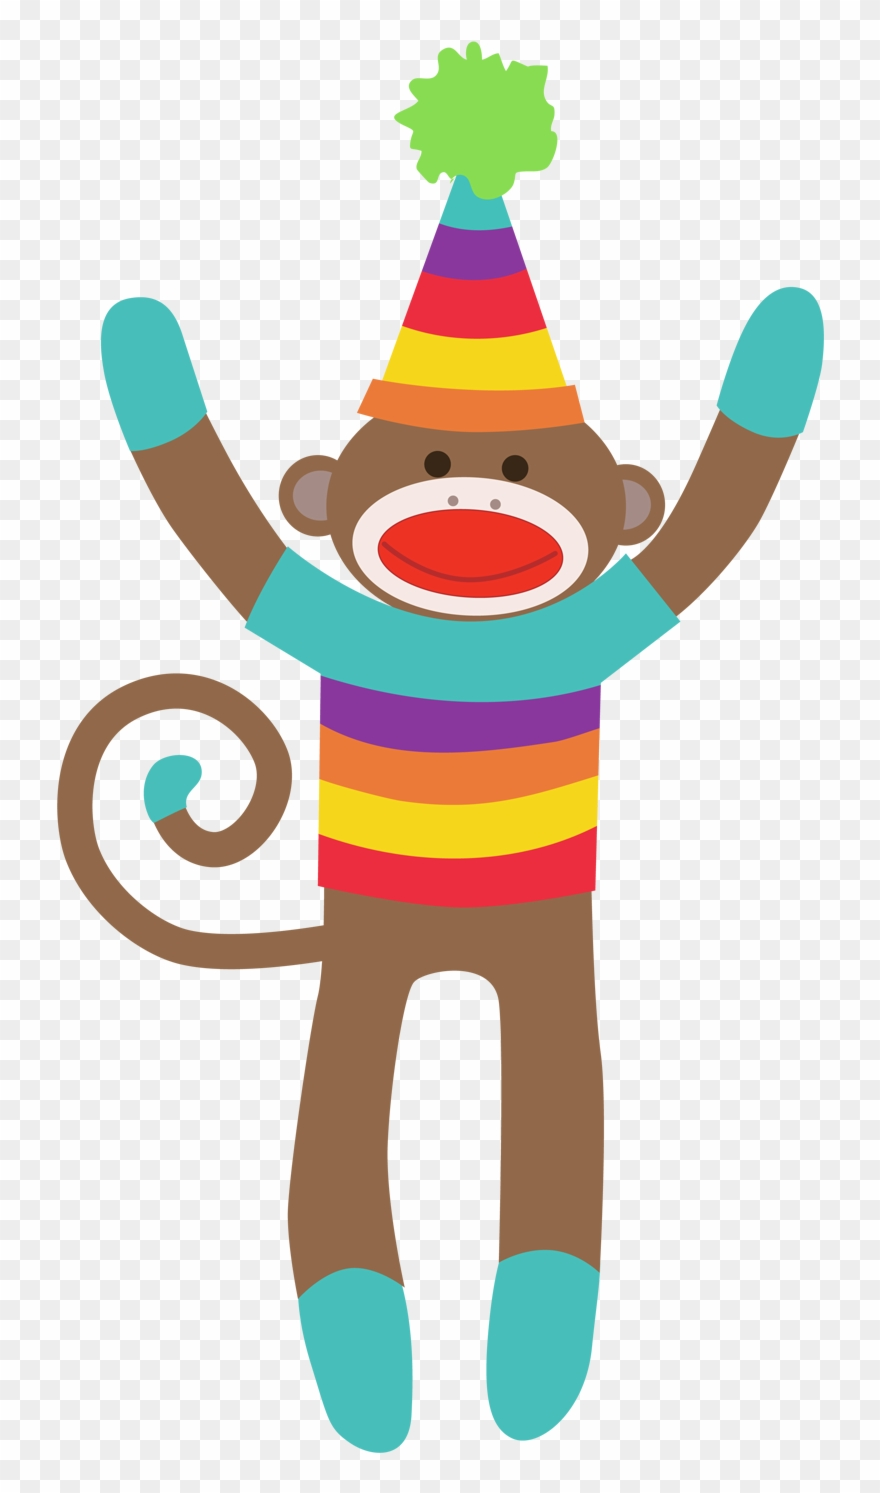 Free sock monkey clipart image freeuse stock Sock Monkey Clipart Free Download Clip Art On - Colorful Sock Monkey ... image freeuse stock